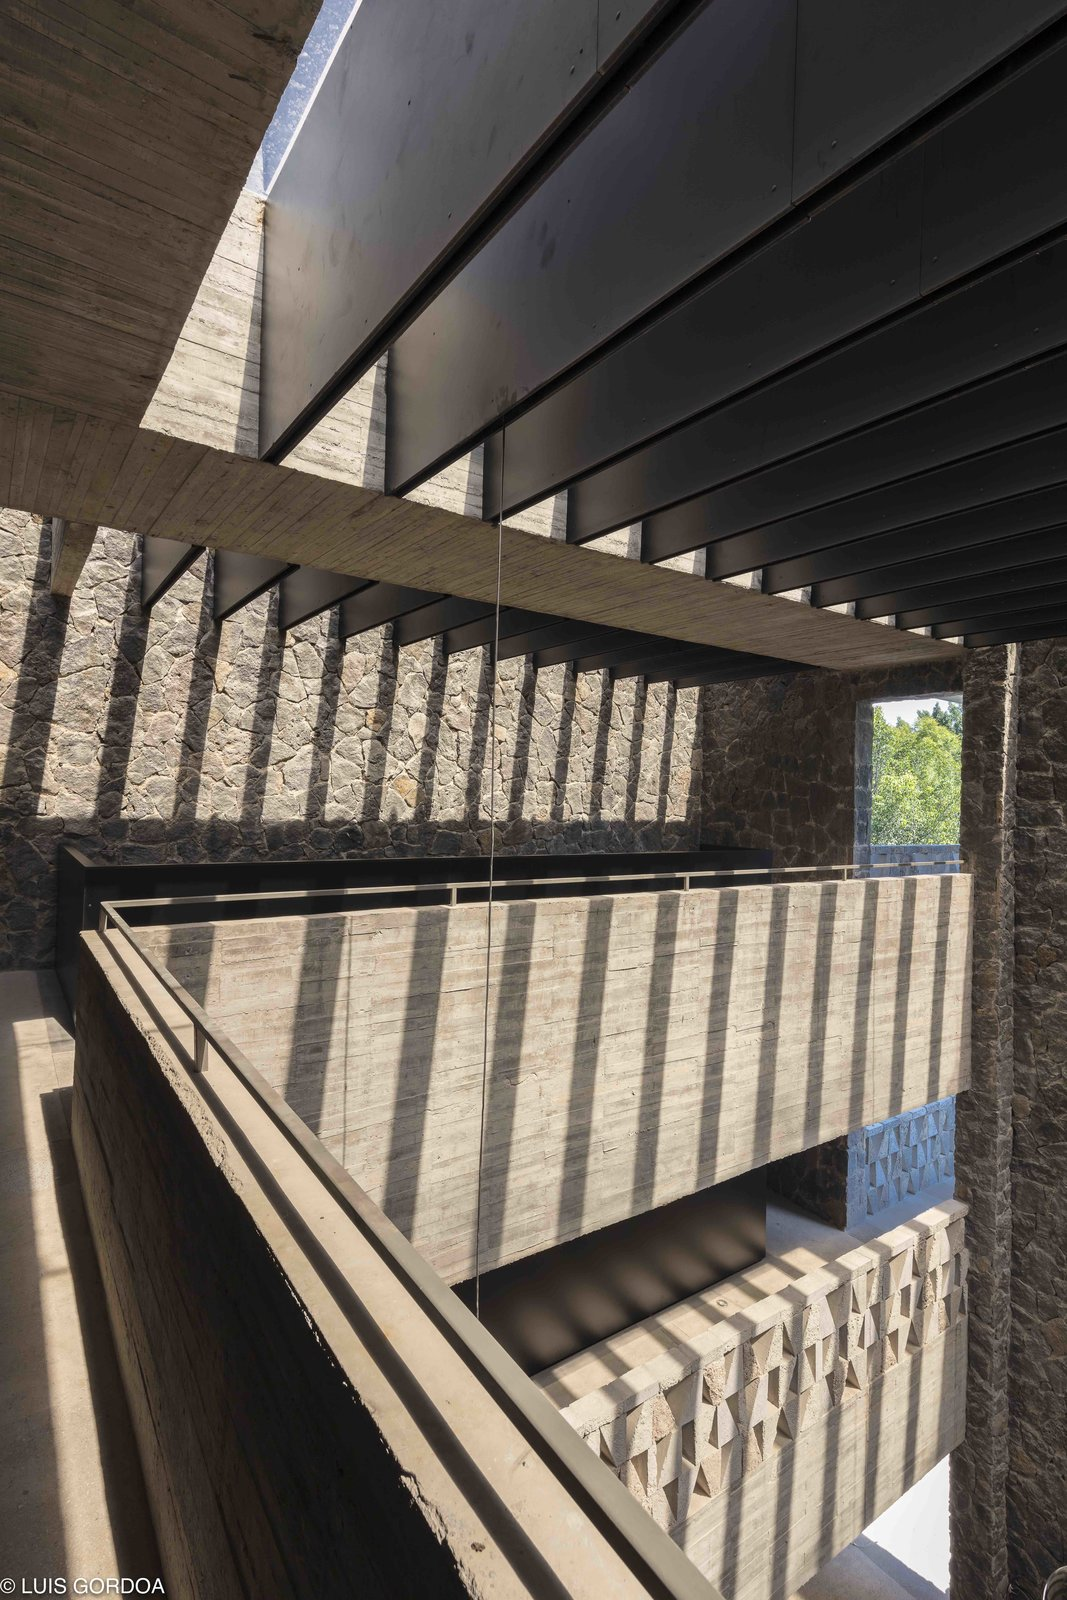 A New Hotel in Morelos Combines Local Mexican Elements With Brutalist Architecture - Photo 7 of 12